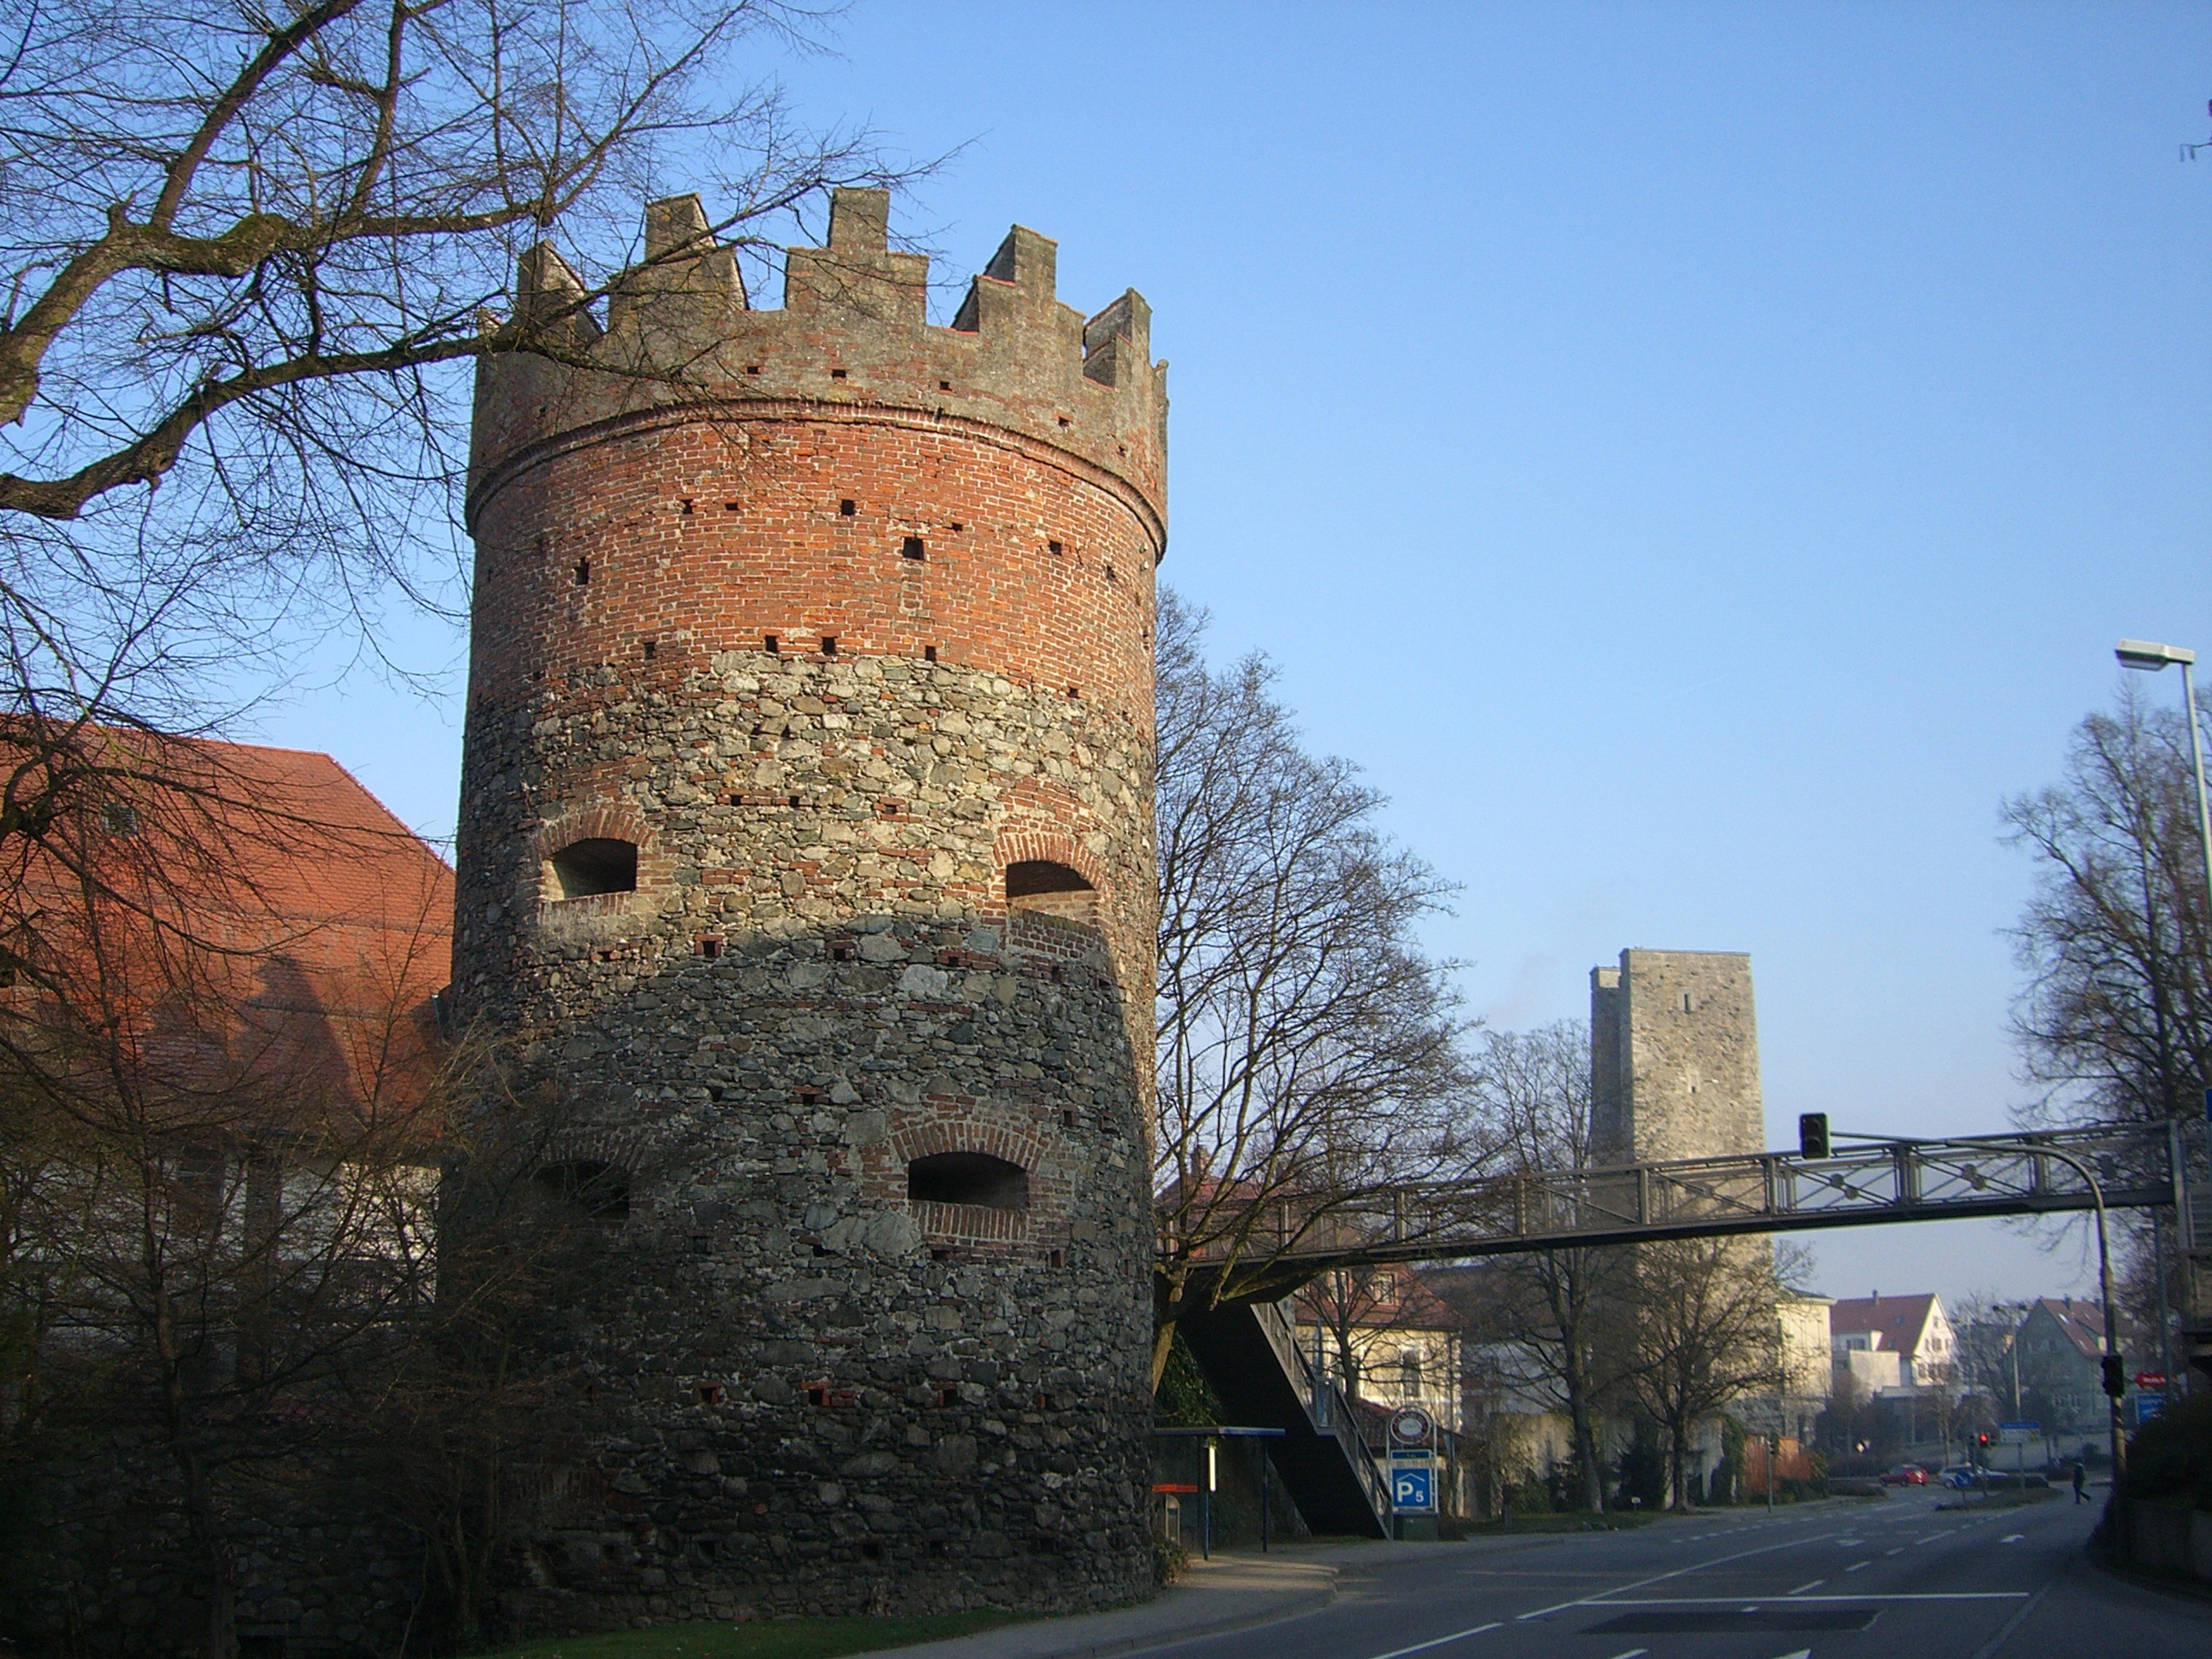 City wall historically building